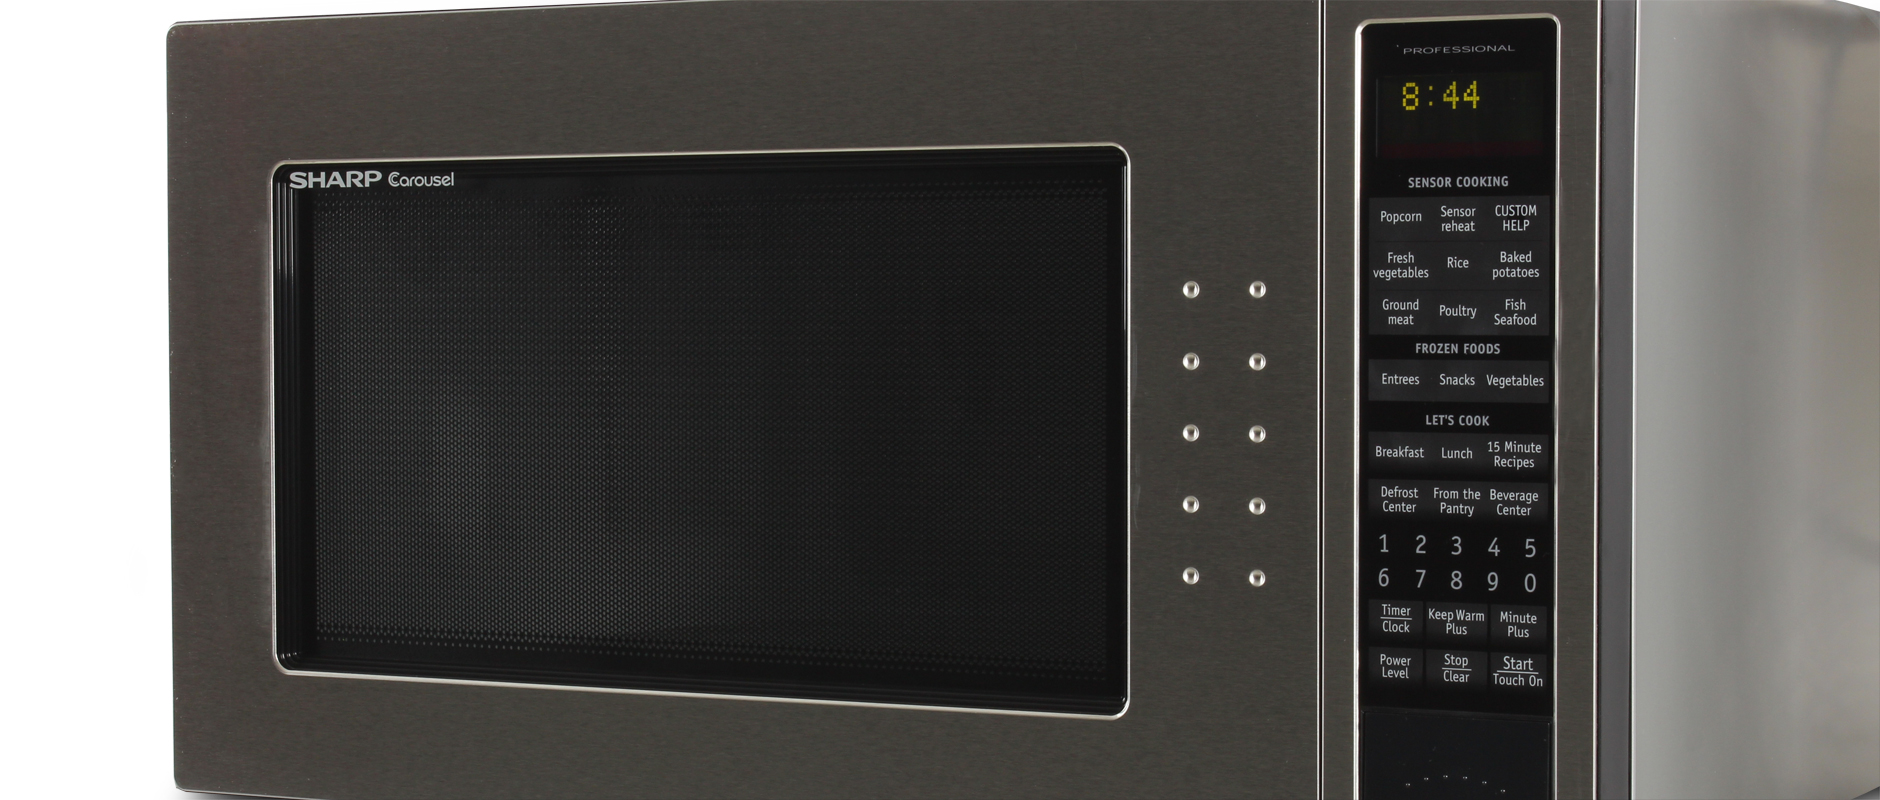 Countertop Microwave Reviews : Sharp R-530ES Countertop Microwave Review - Reviewed.com Microwaves